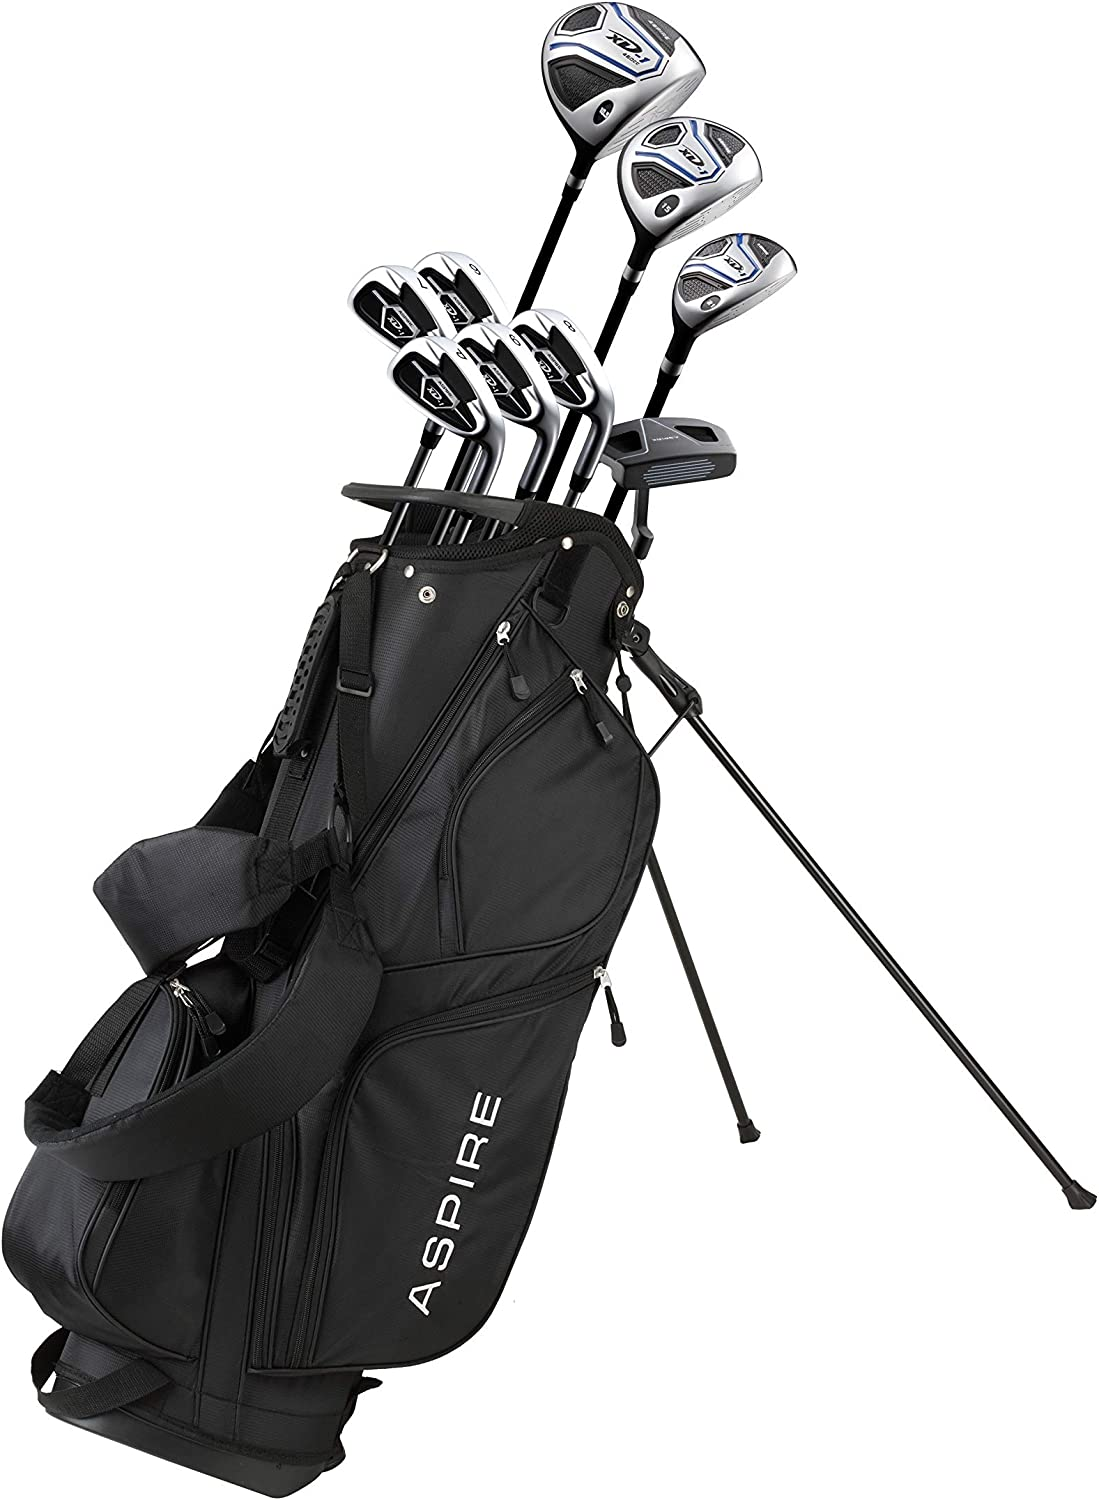 Aspire XD1 Men's Complete Golf Clubs Package Set Includes Titanium Driver, S.S. Fairway, S.S. Hybrid, S.S. 6-PW Irons, Putter, Bag, 3 H/C's Right Hand - Blue - Choose Size!